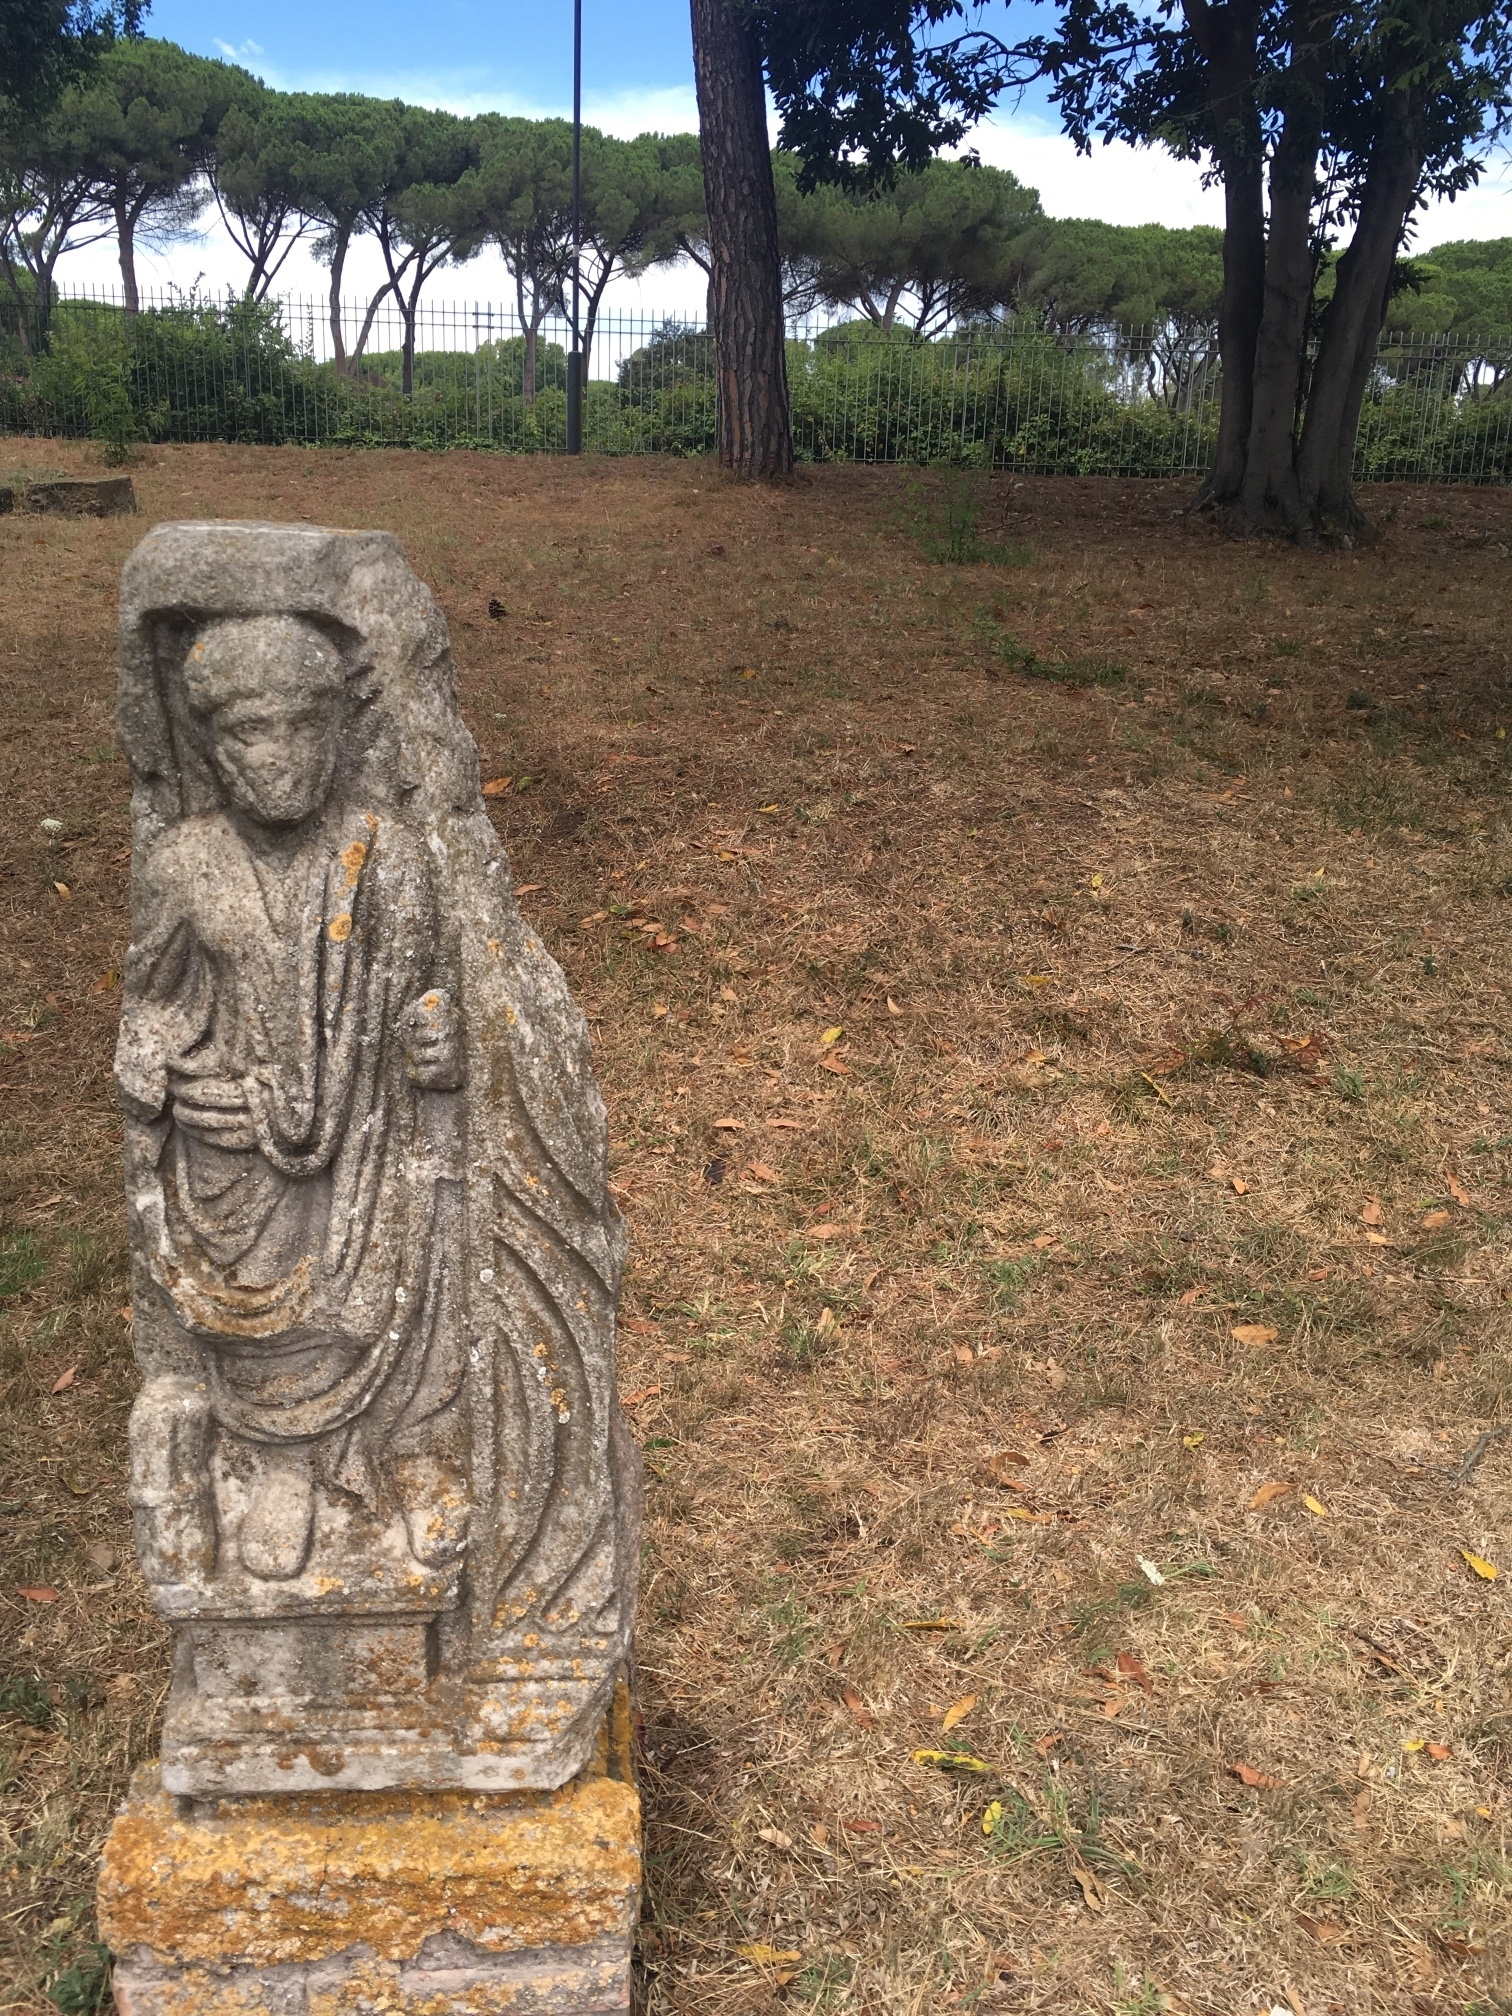 """A statue in the Necropolis, which is the Latin word for """"City Of The Dead"""". The Romans buried their dead outside the city walls, so the necropolis is the first area we walked through."""